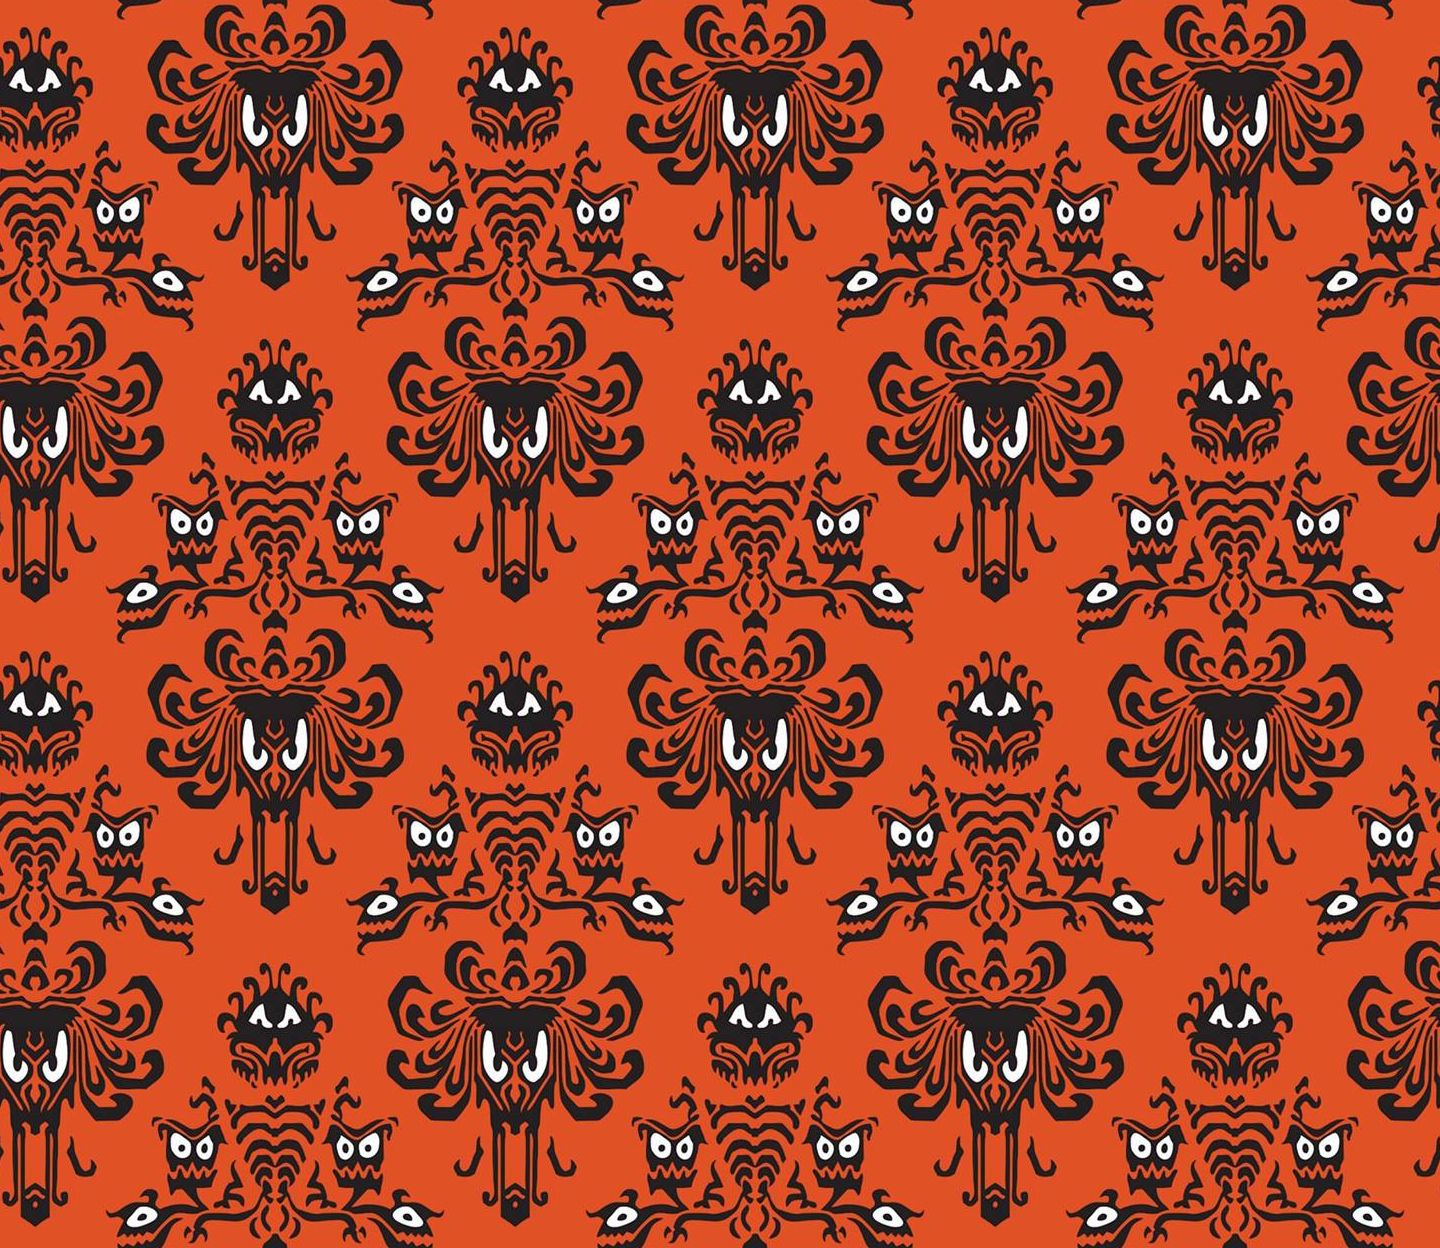 Orange Disney Haunted Mansion Print Wallpaper Fabric